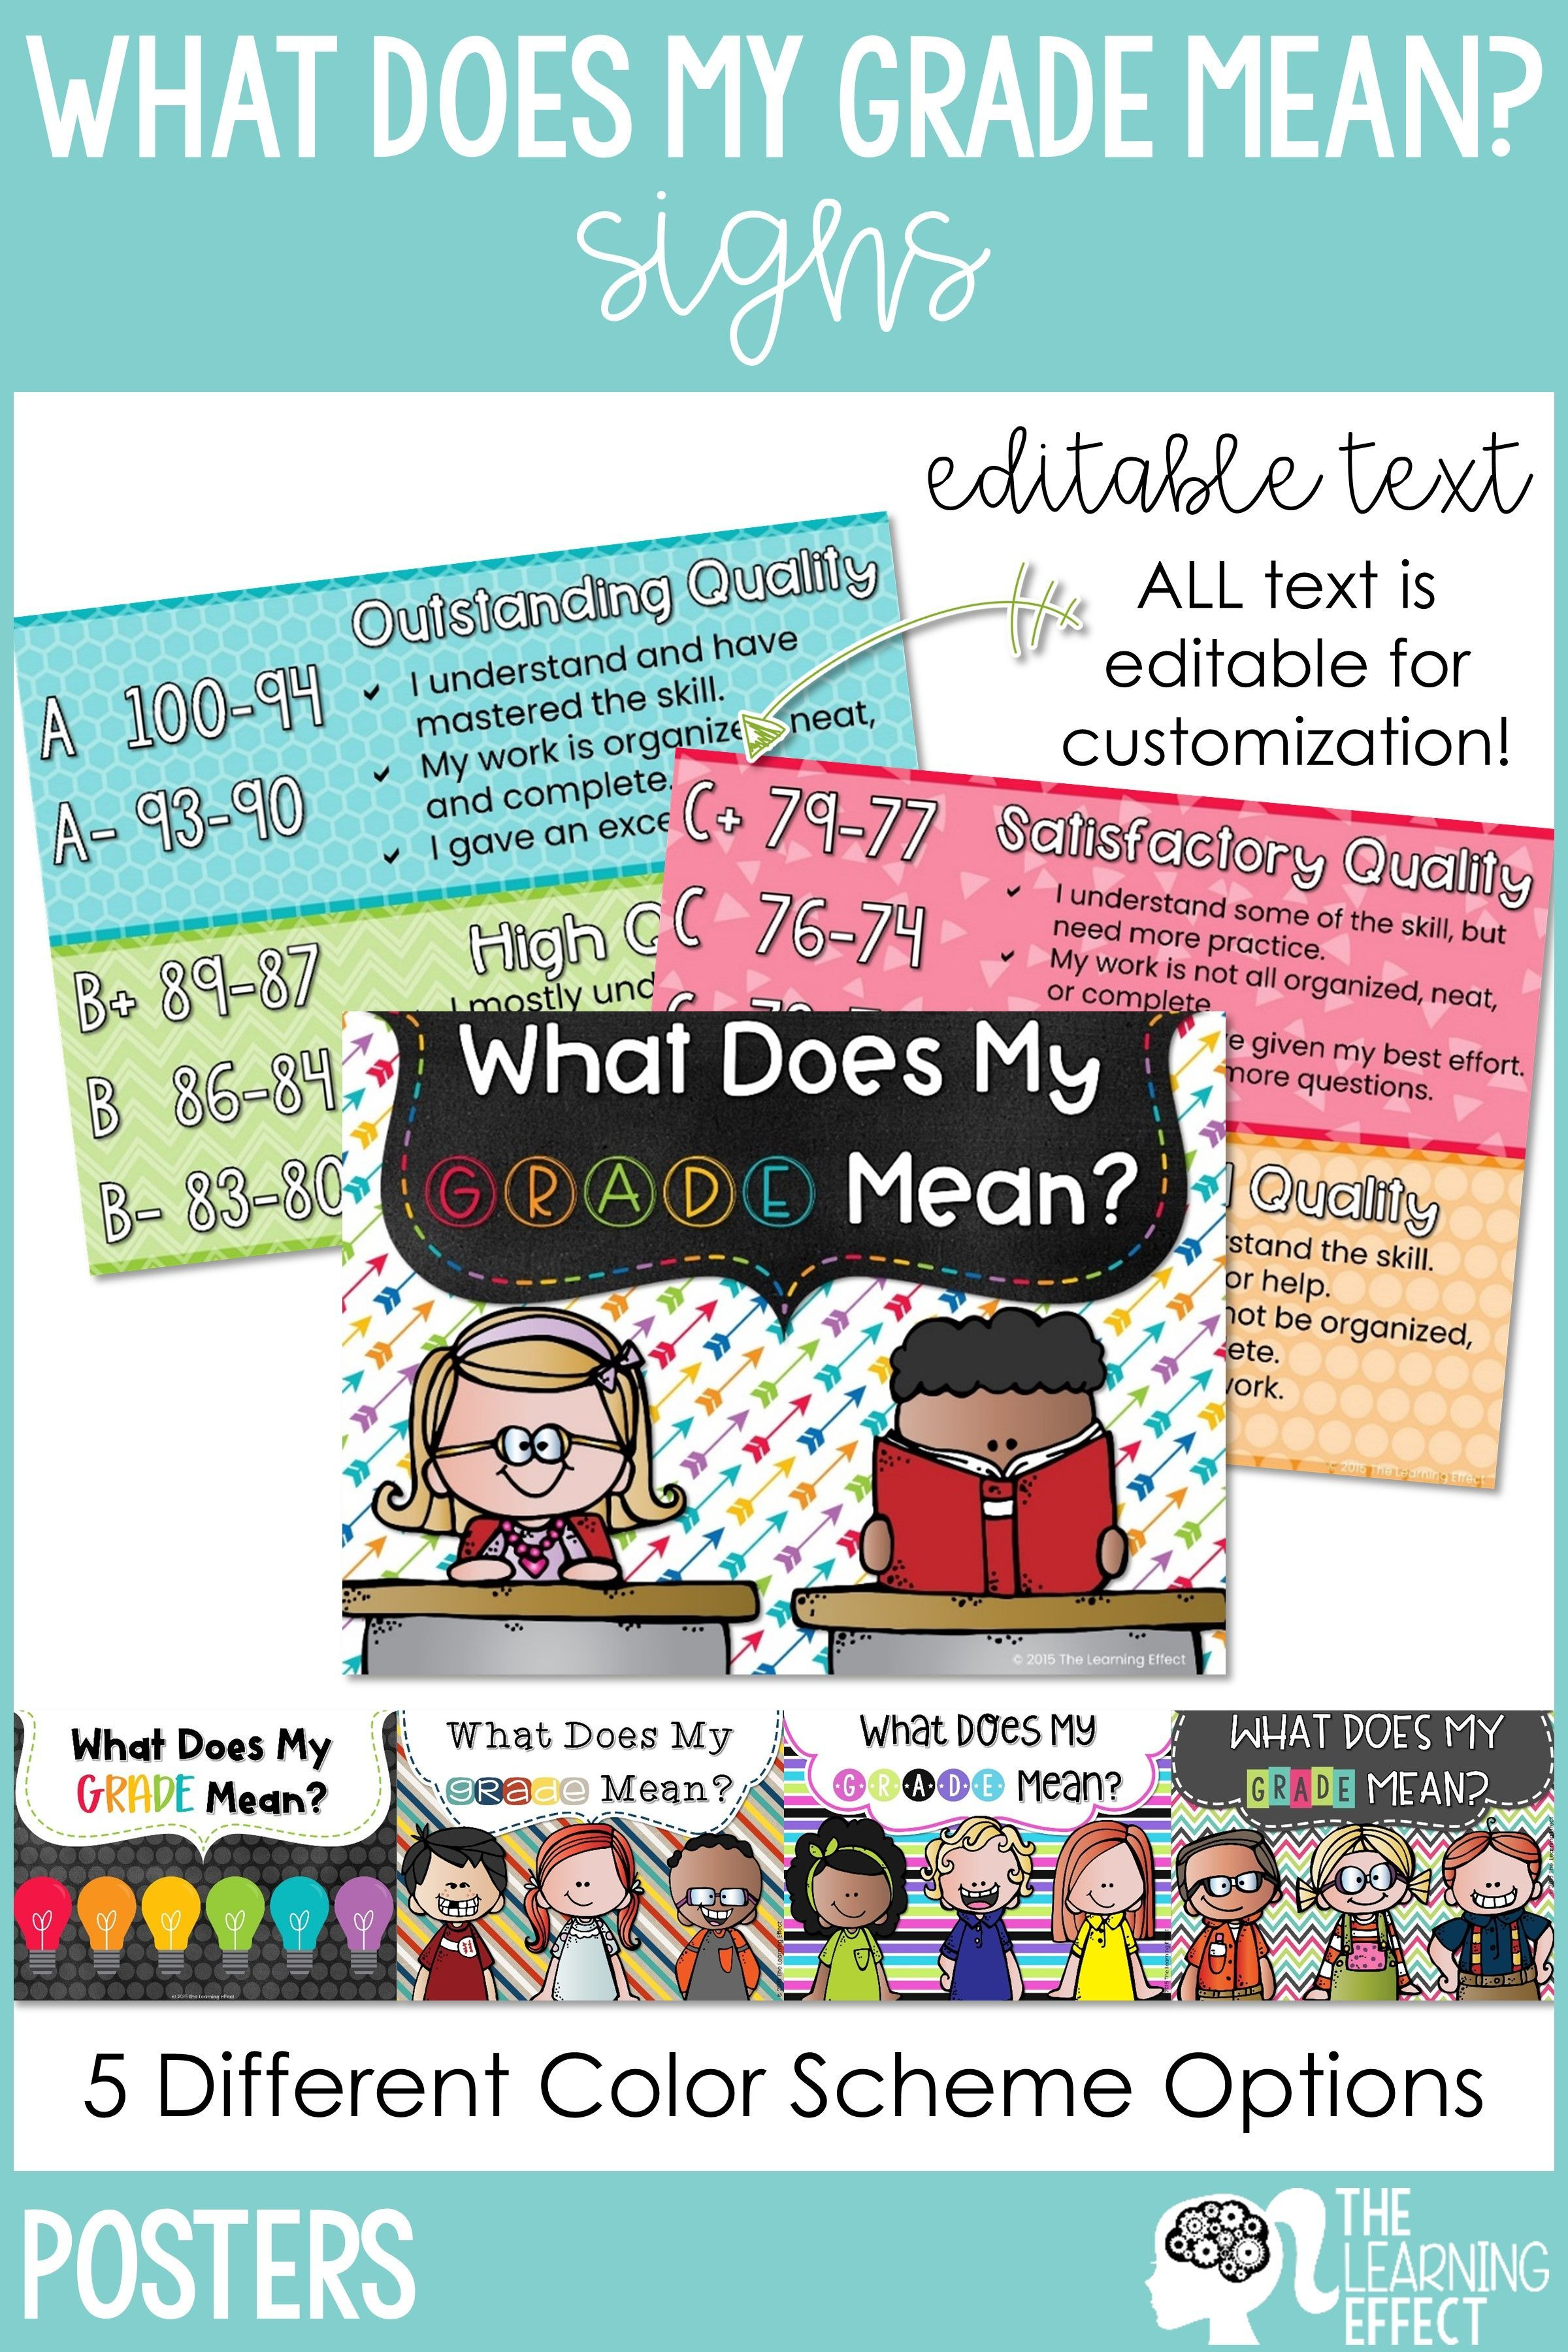 What Does My Grade Mean? Editable Organization skills